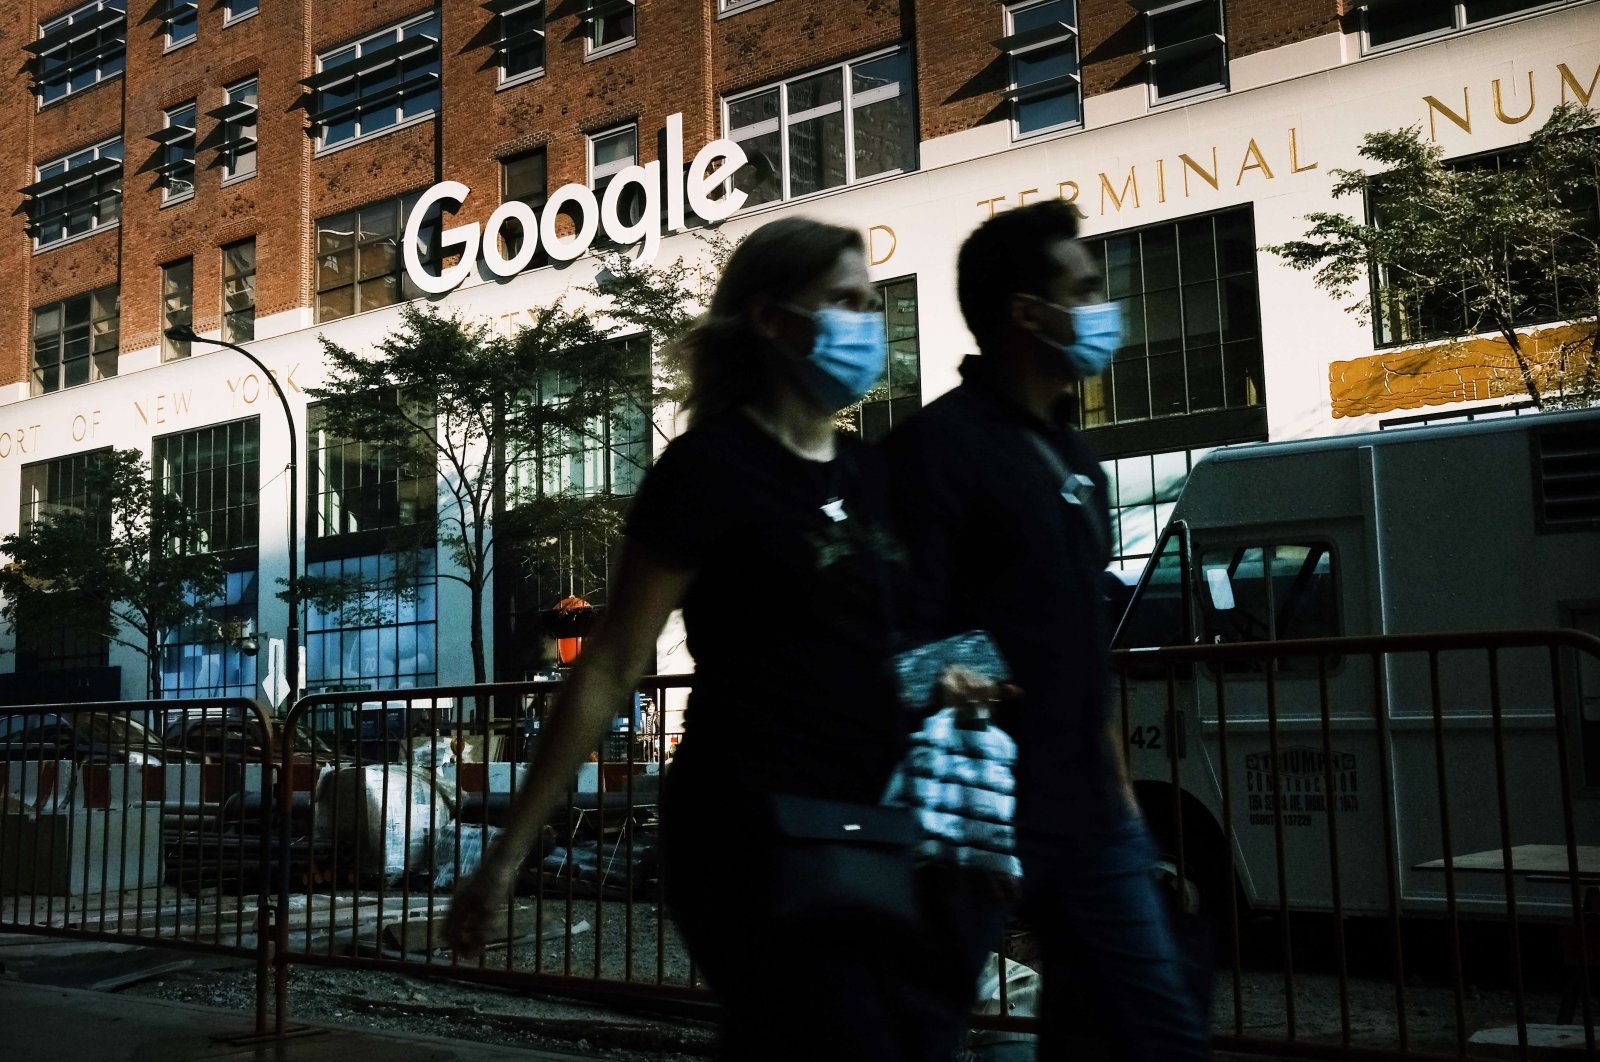 Google's office in downtown Manhattan, New York on Oct. 20, 2020. (AFP Photo)